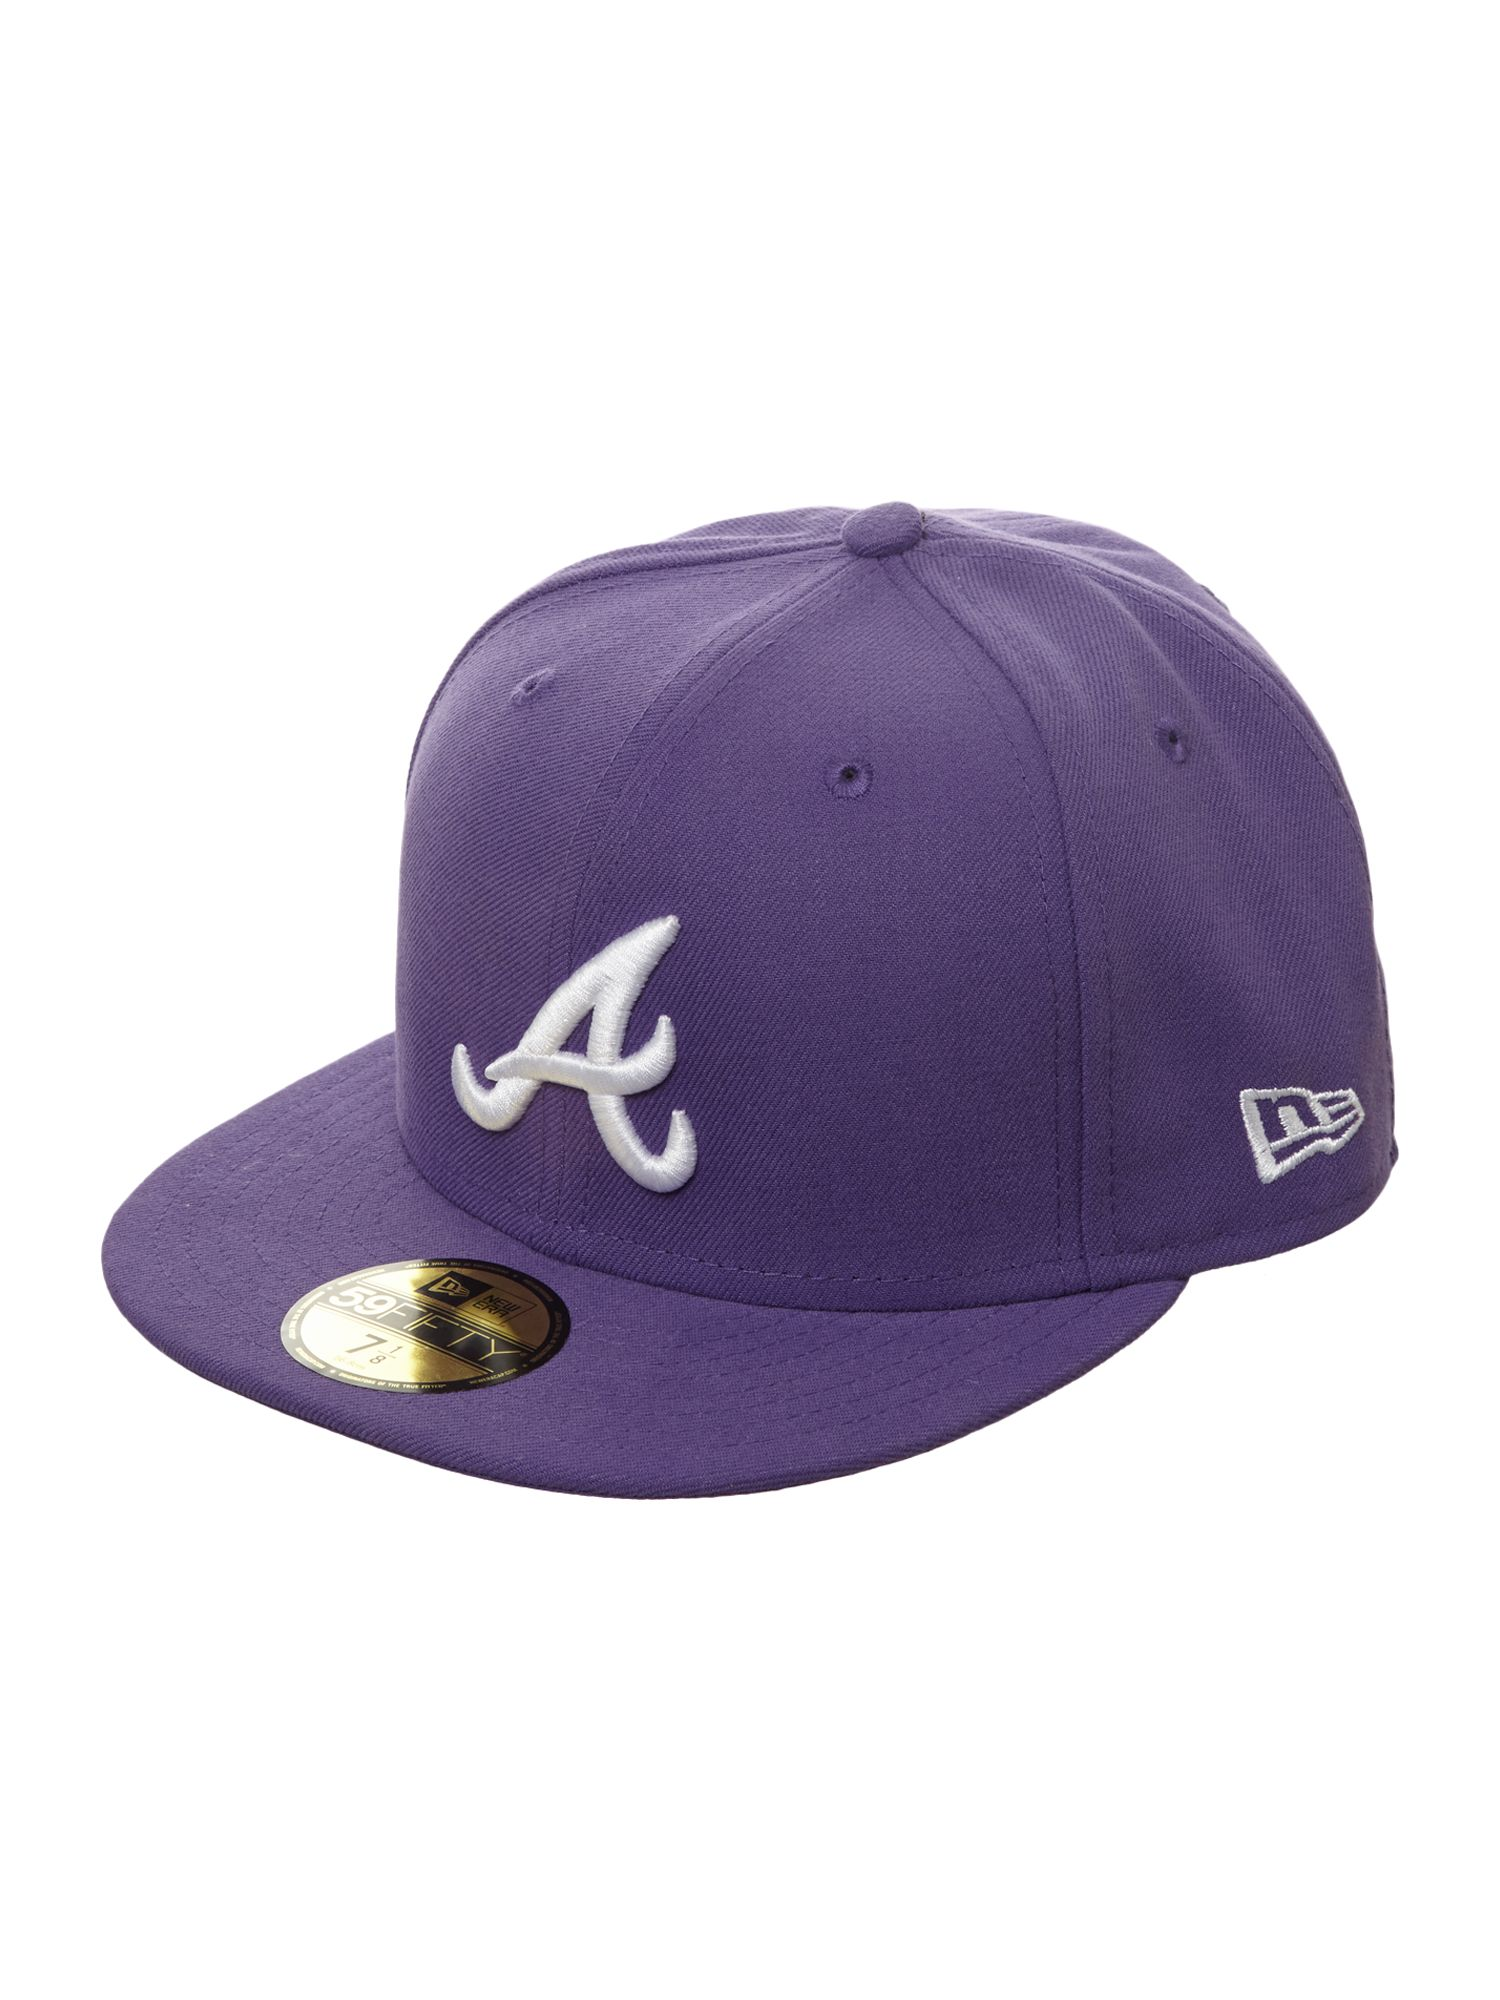 Atlanta braves 59 fifty